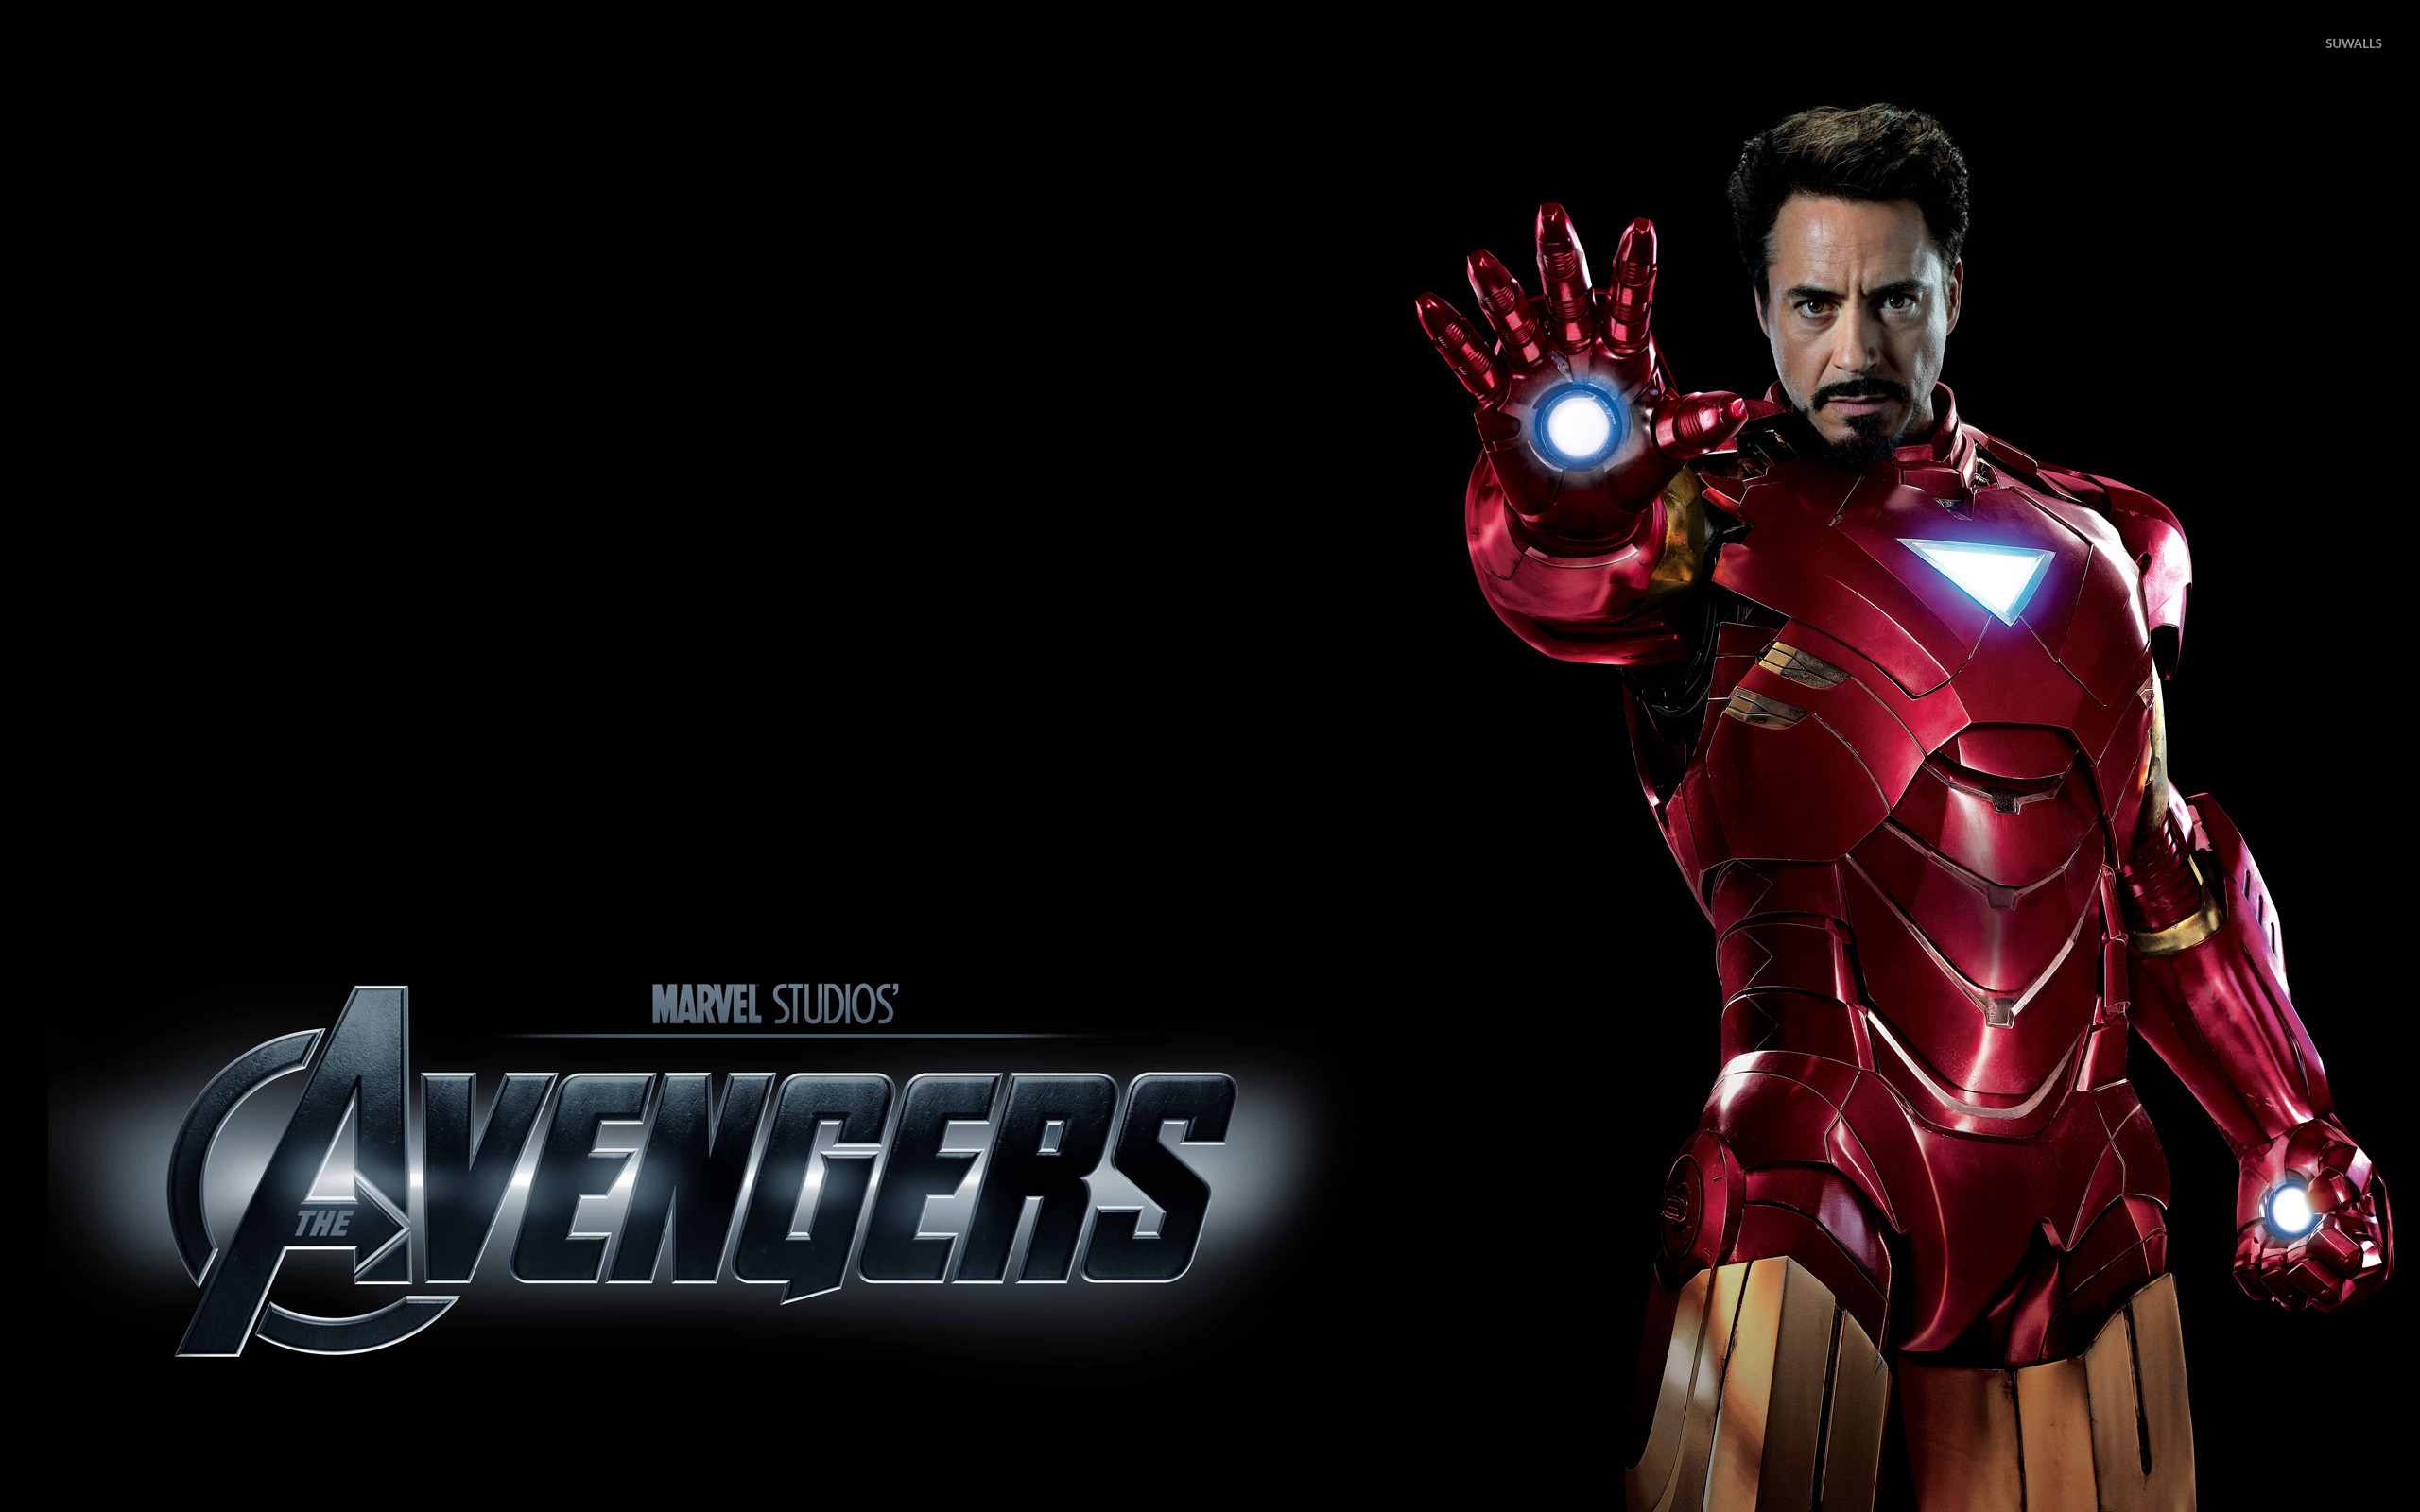 Iron man the avengers 2 wallpaper movie wallpapers 10885 iron man the avengers 2 wallpaper voltagebd Image collections